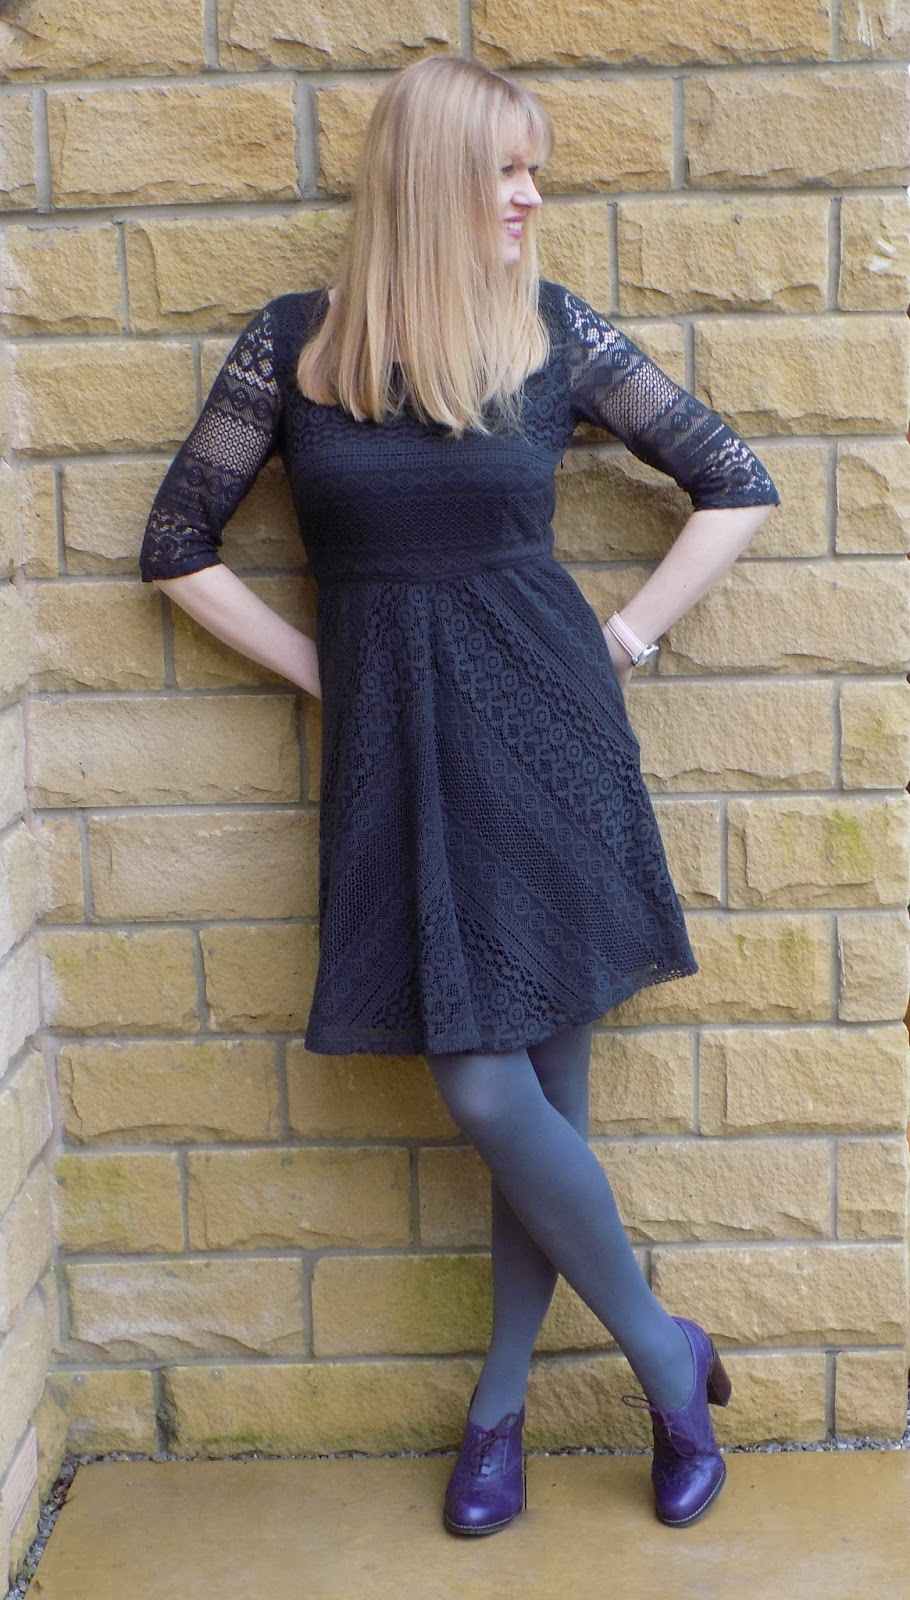 what-lizzy-loves-high-heeled-brogues-grey-dress